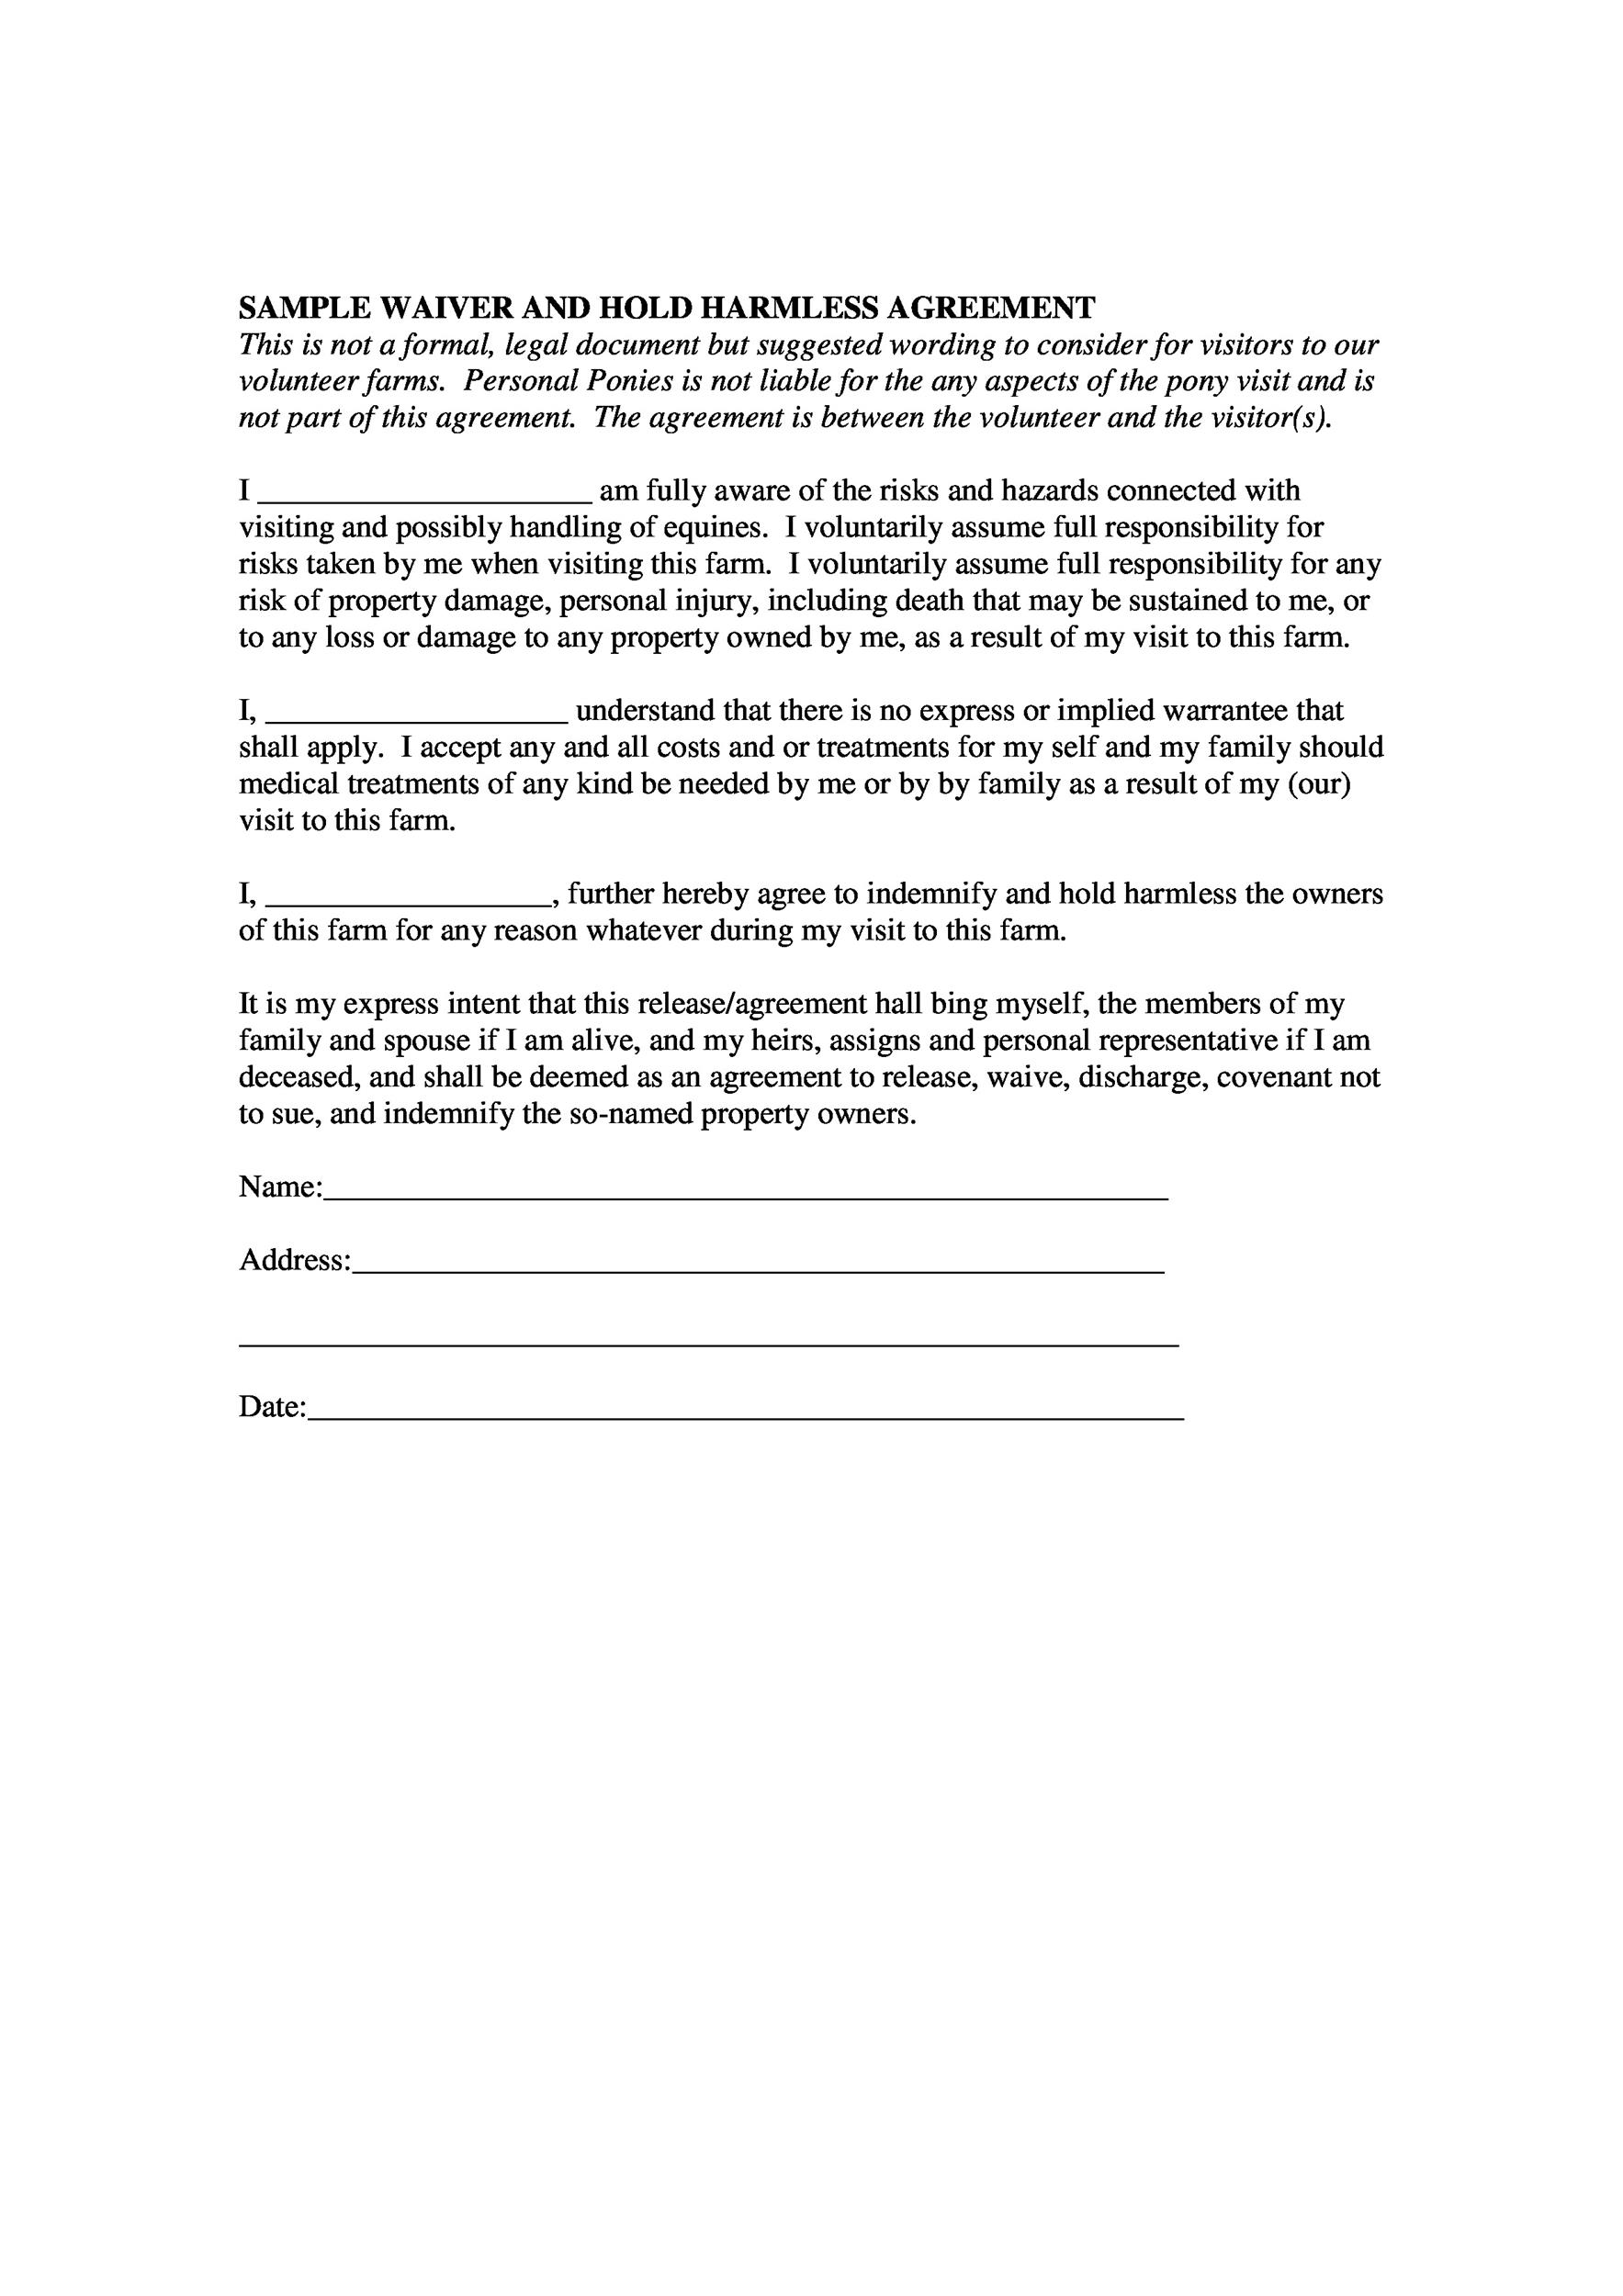 free examples of college admissions essays arrow essays in the – Hold Harmless Agreement Template